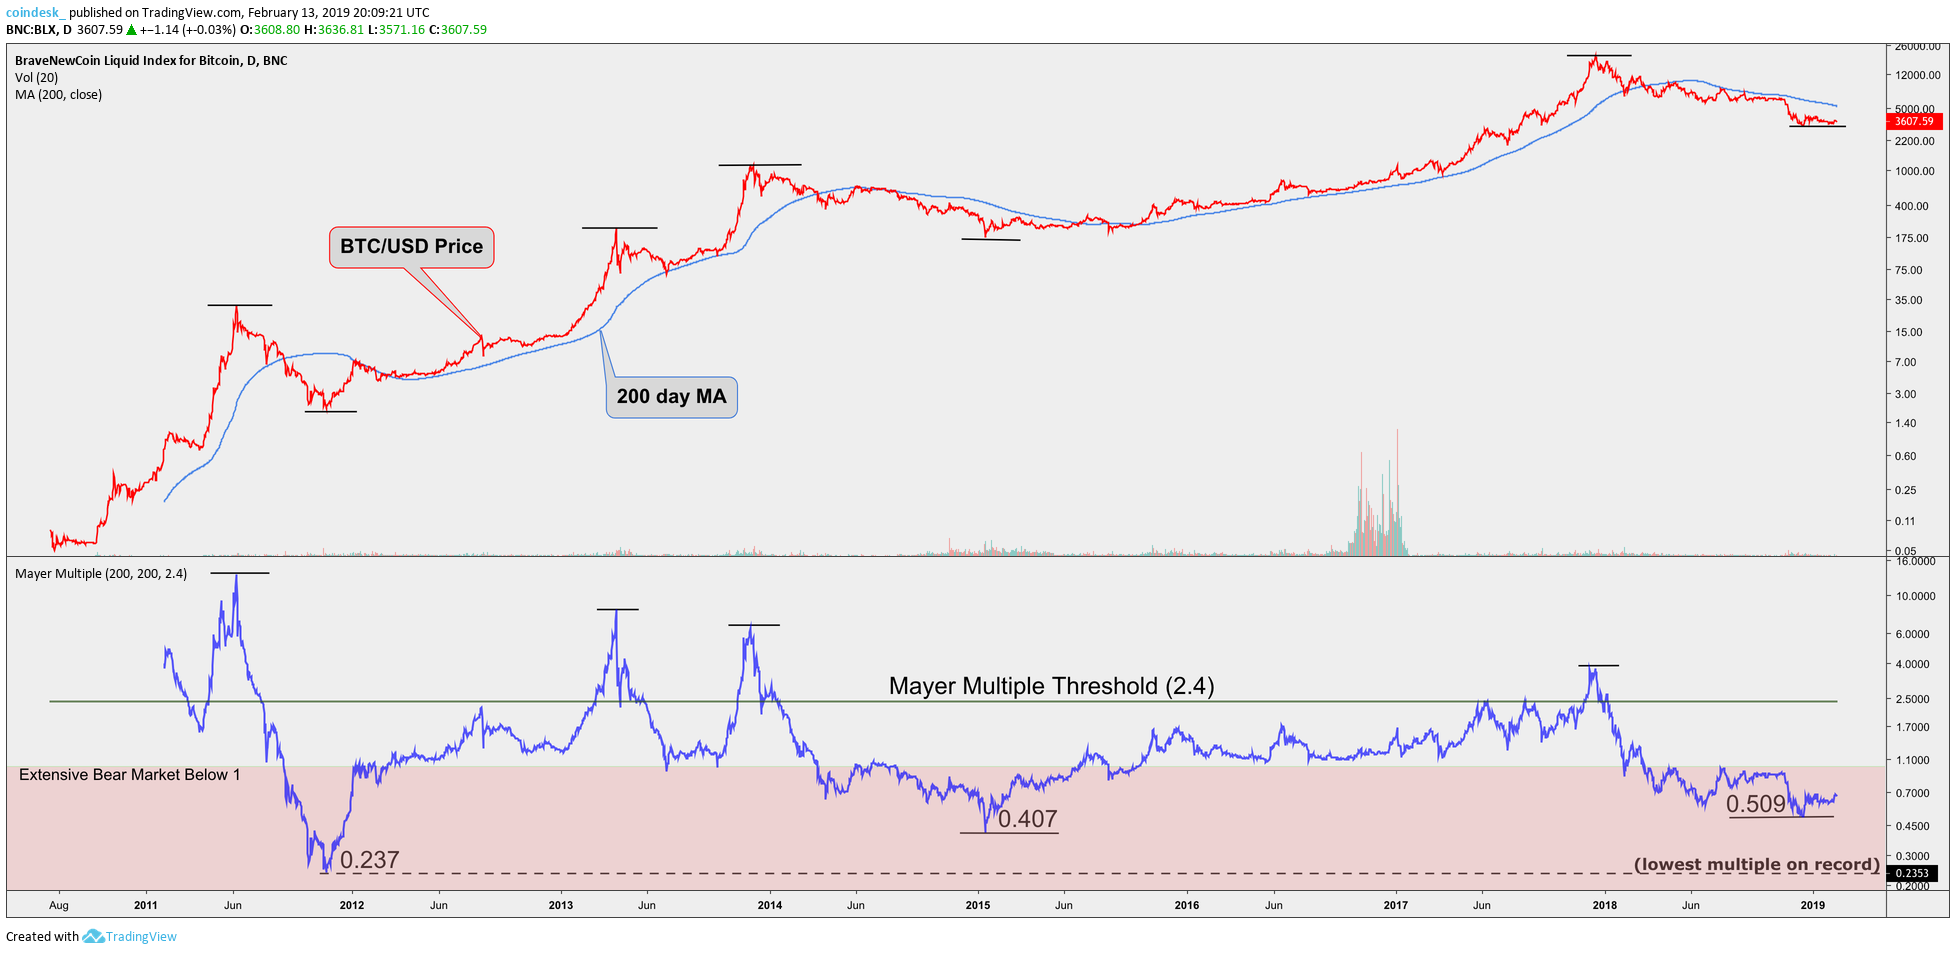 Mayer Multiples: The Metric That Helps Call Bitcoin Bubbles and Bottoms